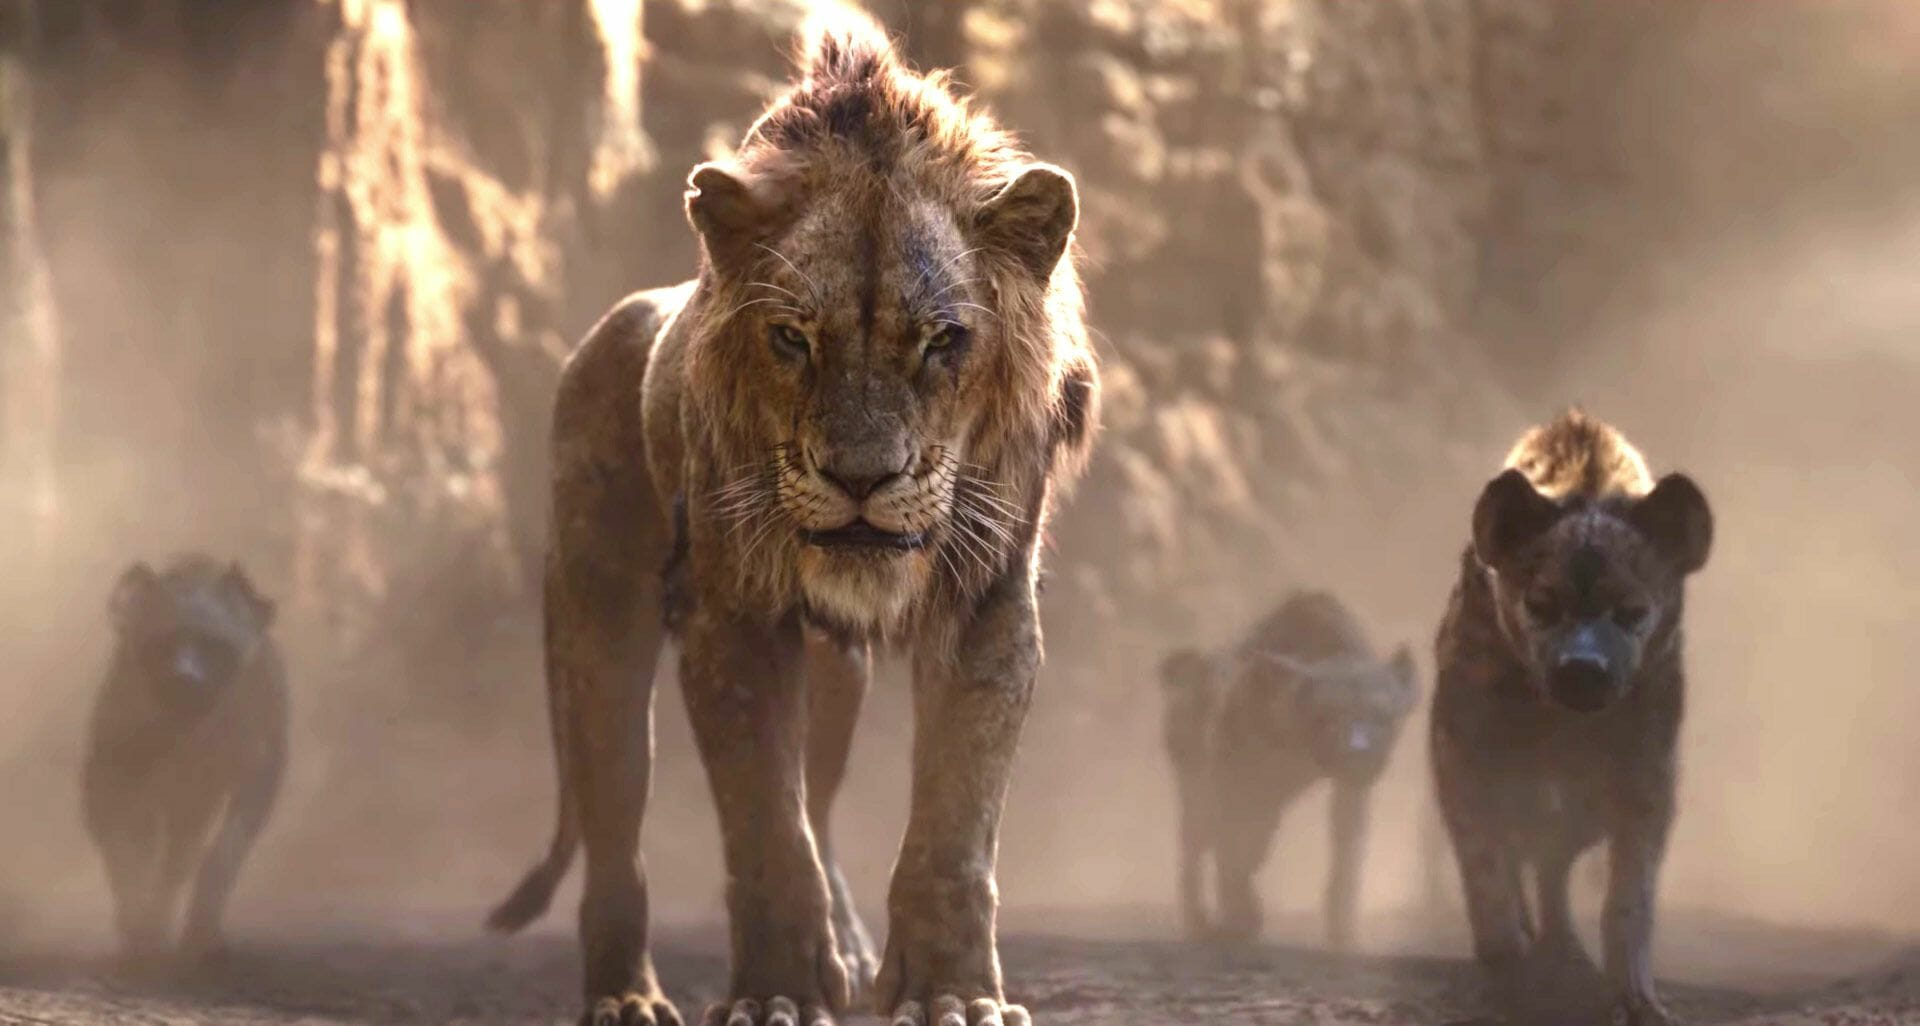 The Lion King 2019 Photo Realism Shines The Two Gay Geeks